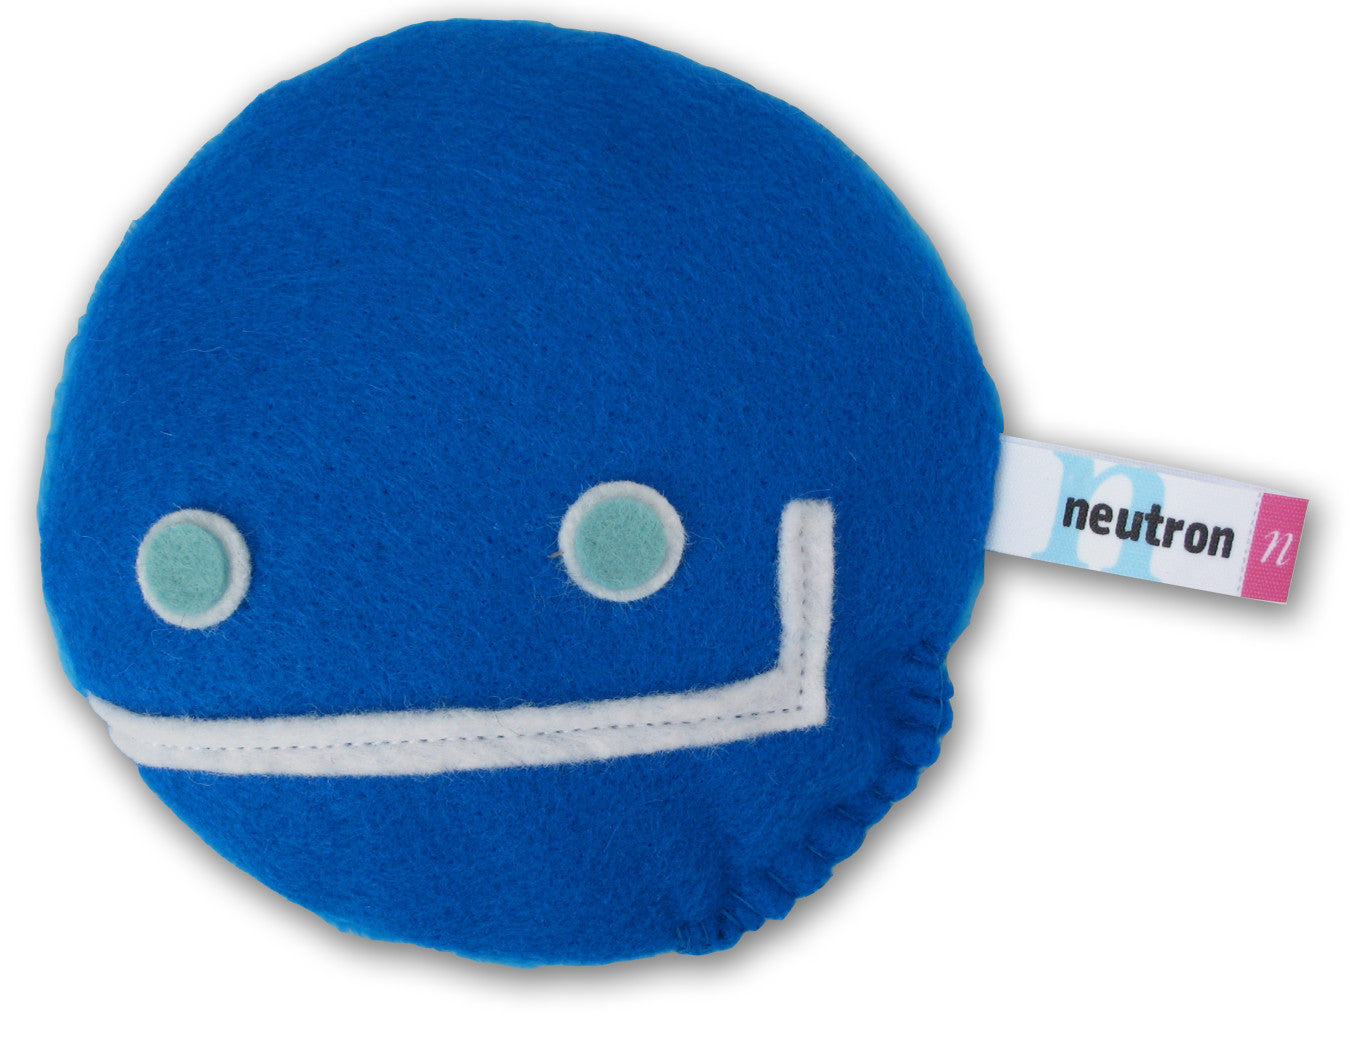 neutron the particle zoo